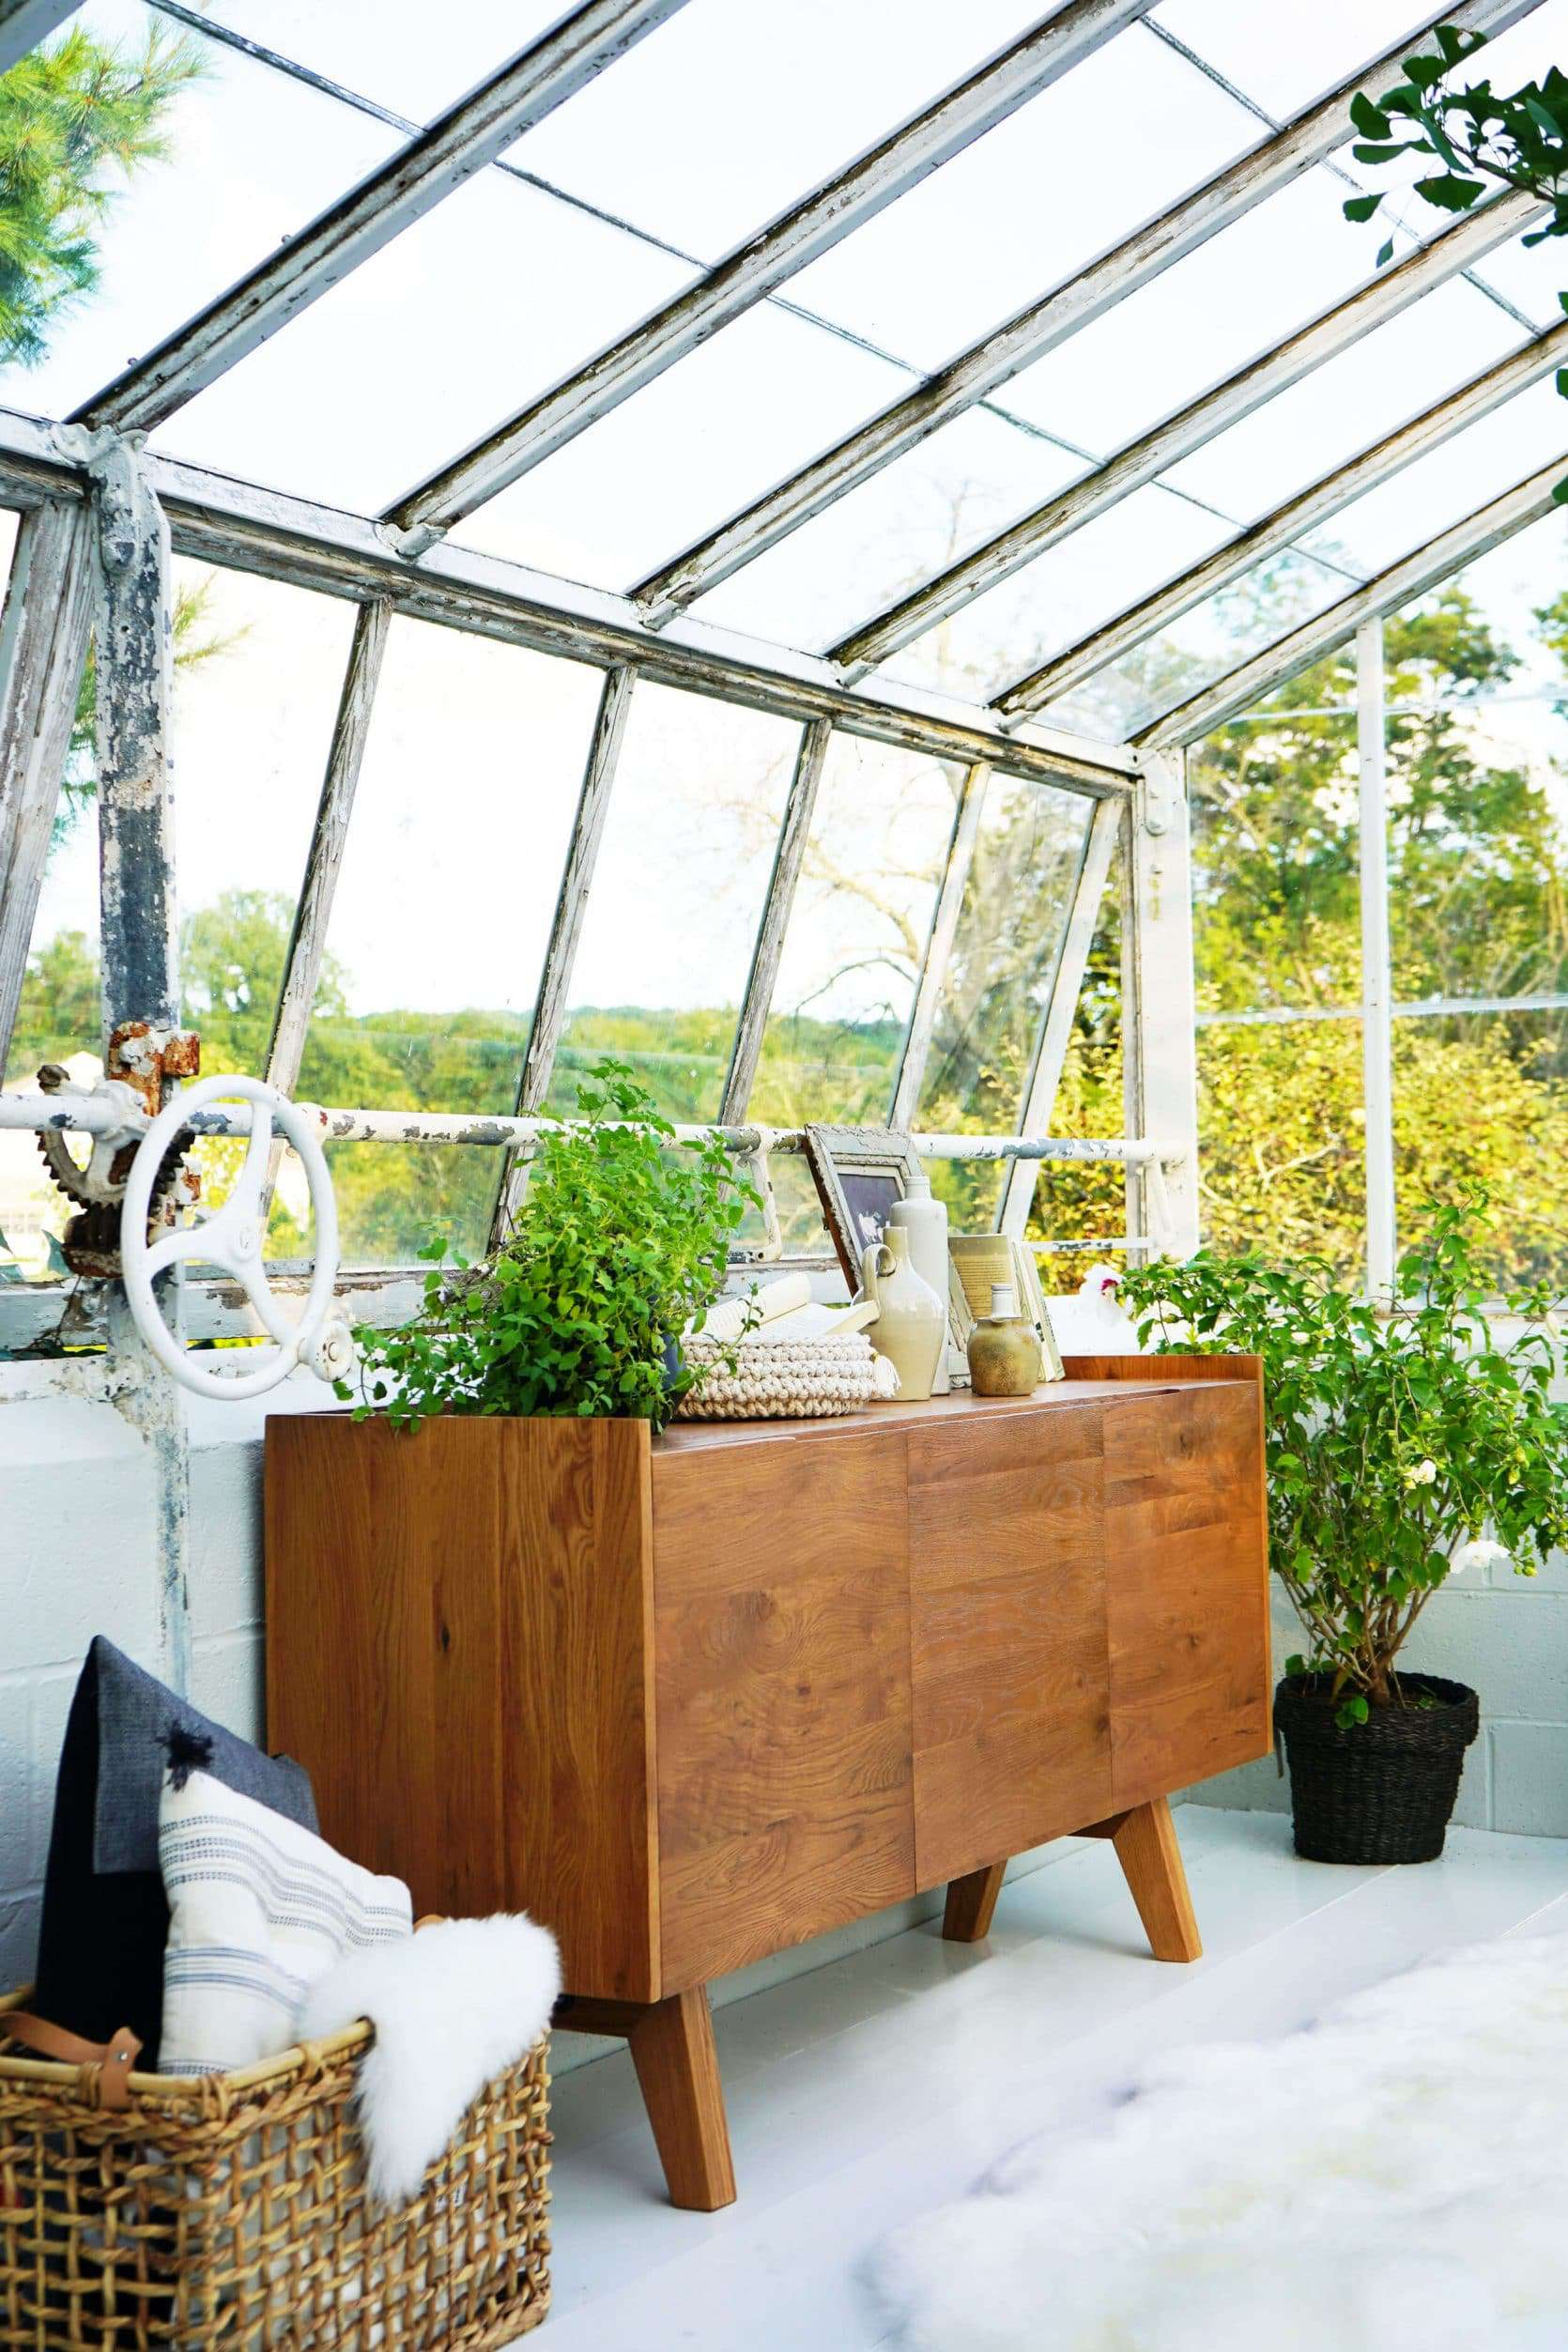 Emily Henderson Samsung The Frame My Scandinavian Home Greenhouse 13